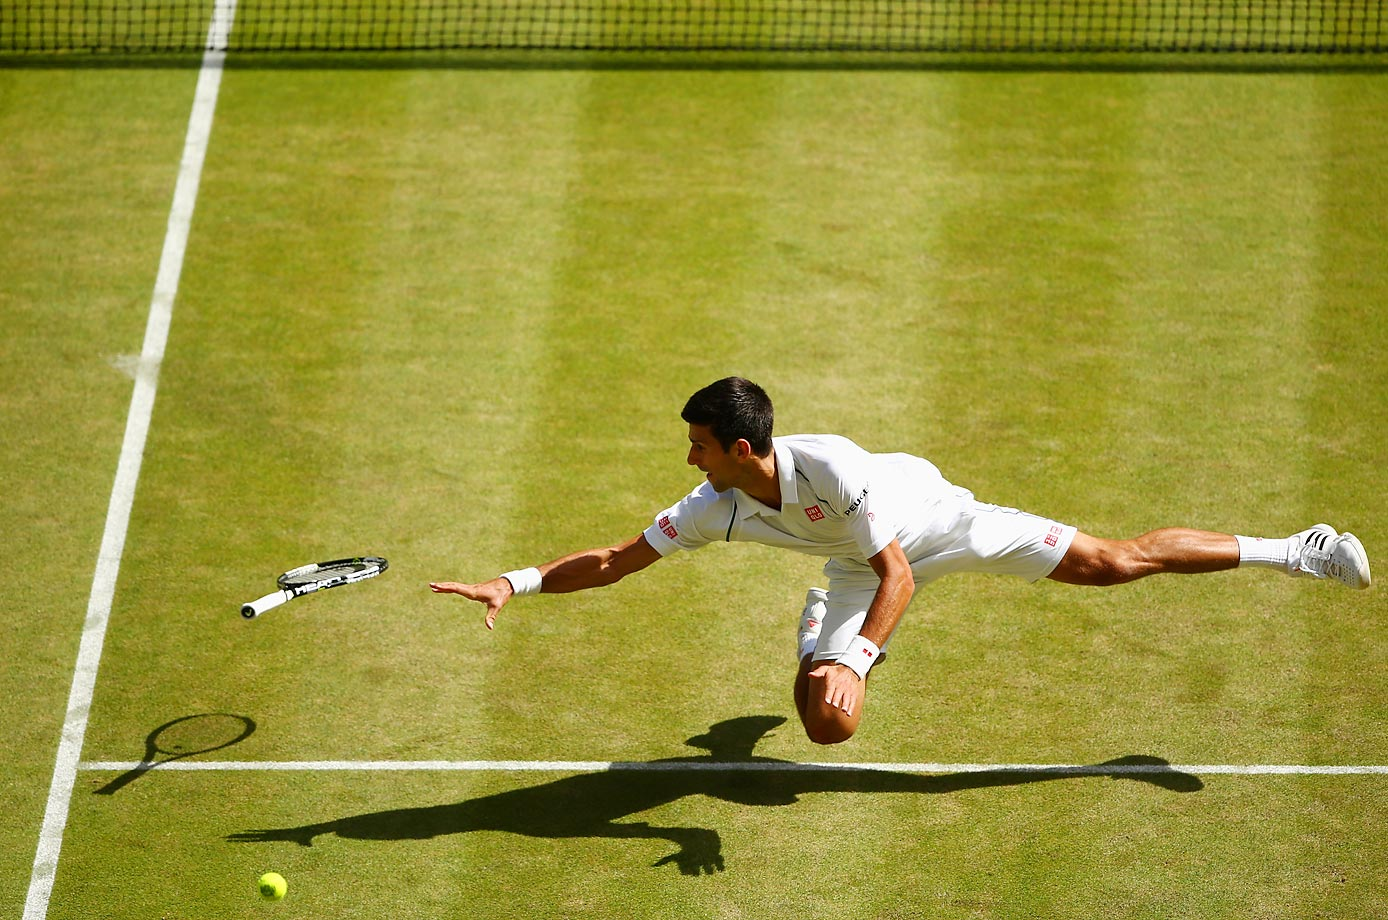 Novak Djokovic dives for a backhand against Richard Gasquet at Wimbledon.